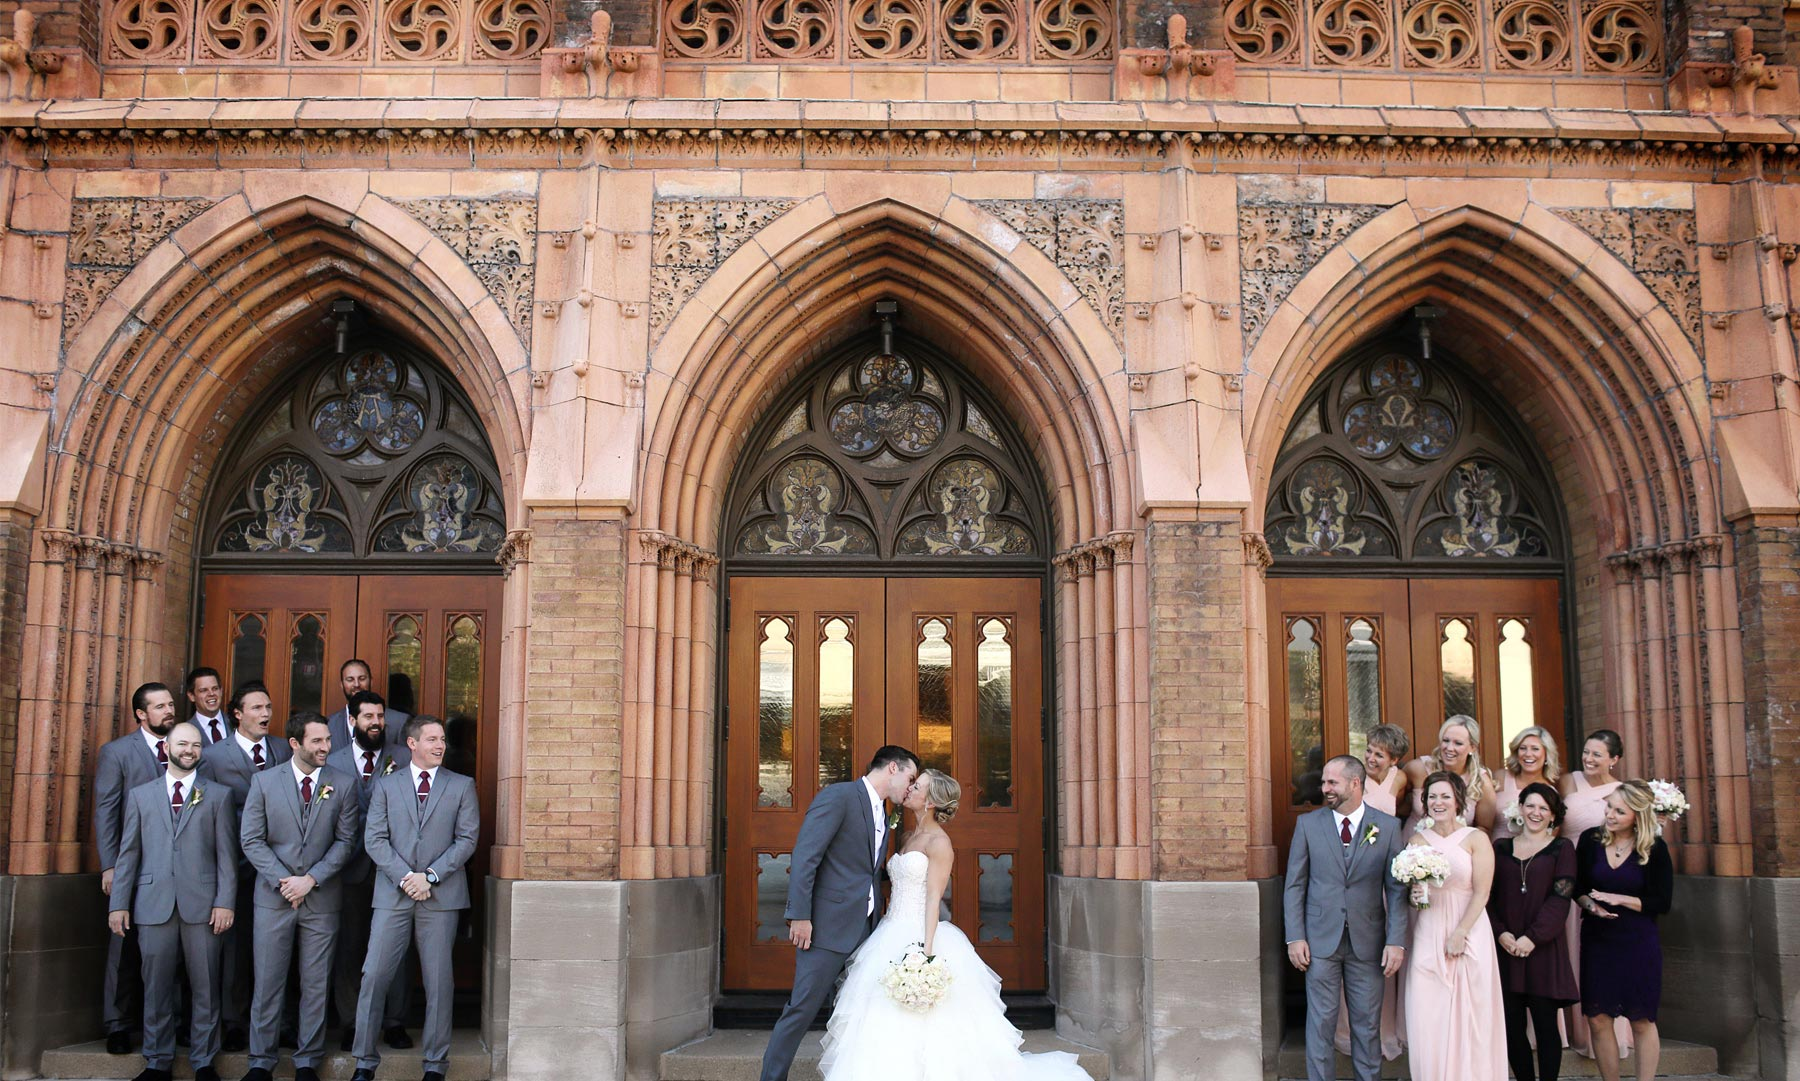 14-Milwaukee-Wisconsin-Wedding-Photographer-by-Andrew-Vick-Photography-Fall-Autumn-Destination-Grave-Evangelical-Lutheran-Church-Bride-Groom-Bridal-Party-Groomsmen-Bridesmaids-Kiss-Tina-and-Kevin.jpg